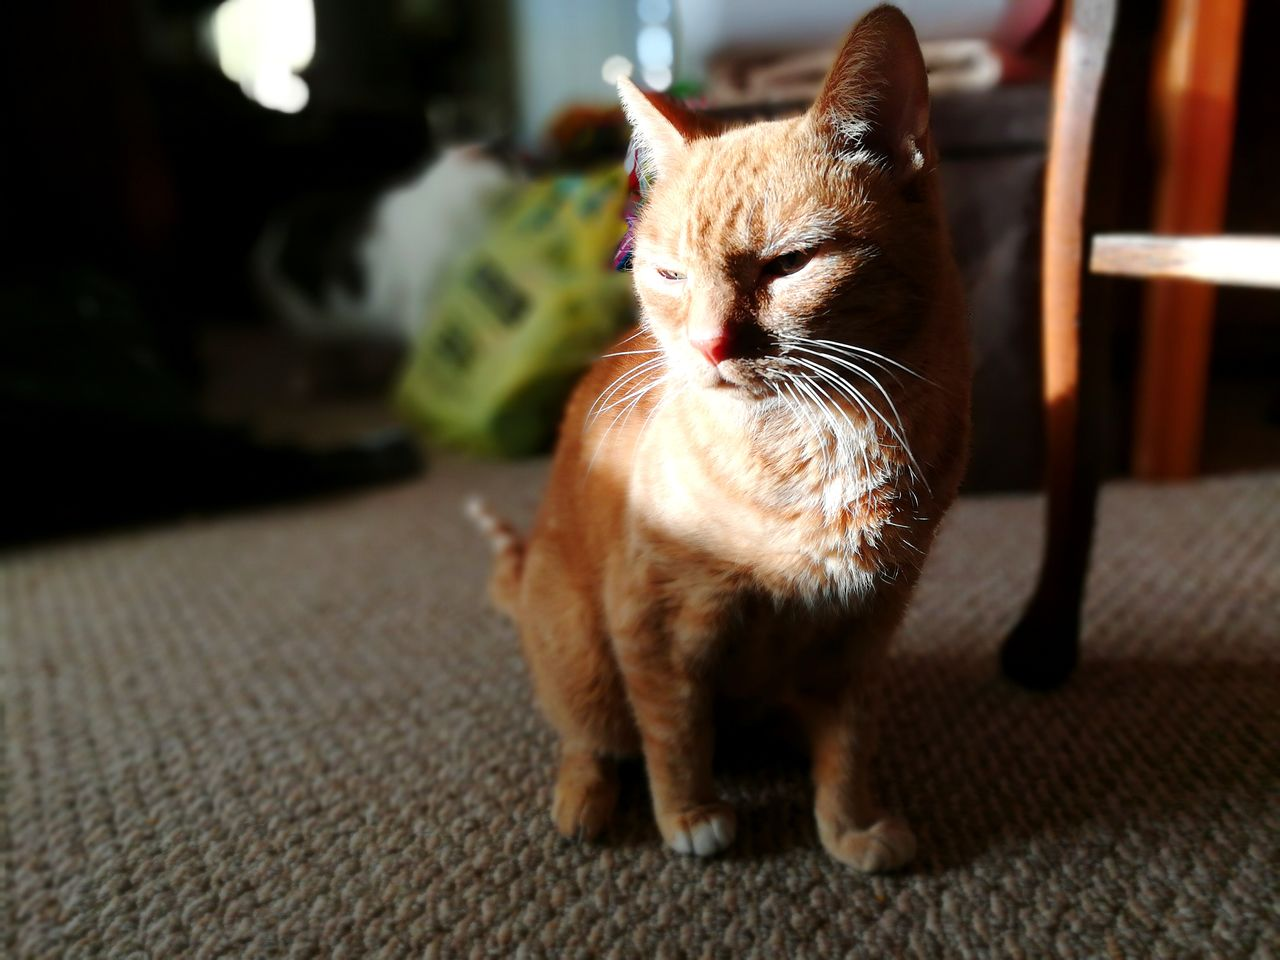 domestic cat, one animal, animal themes, domestic animals, pets, feline, cat, mammal, sitting, indoors, no people, home interior, focus on foreground, whisker, ginger cat, day, close-up